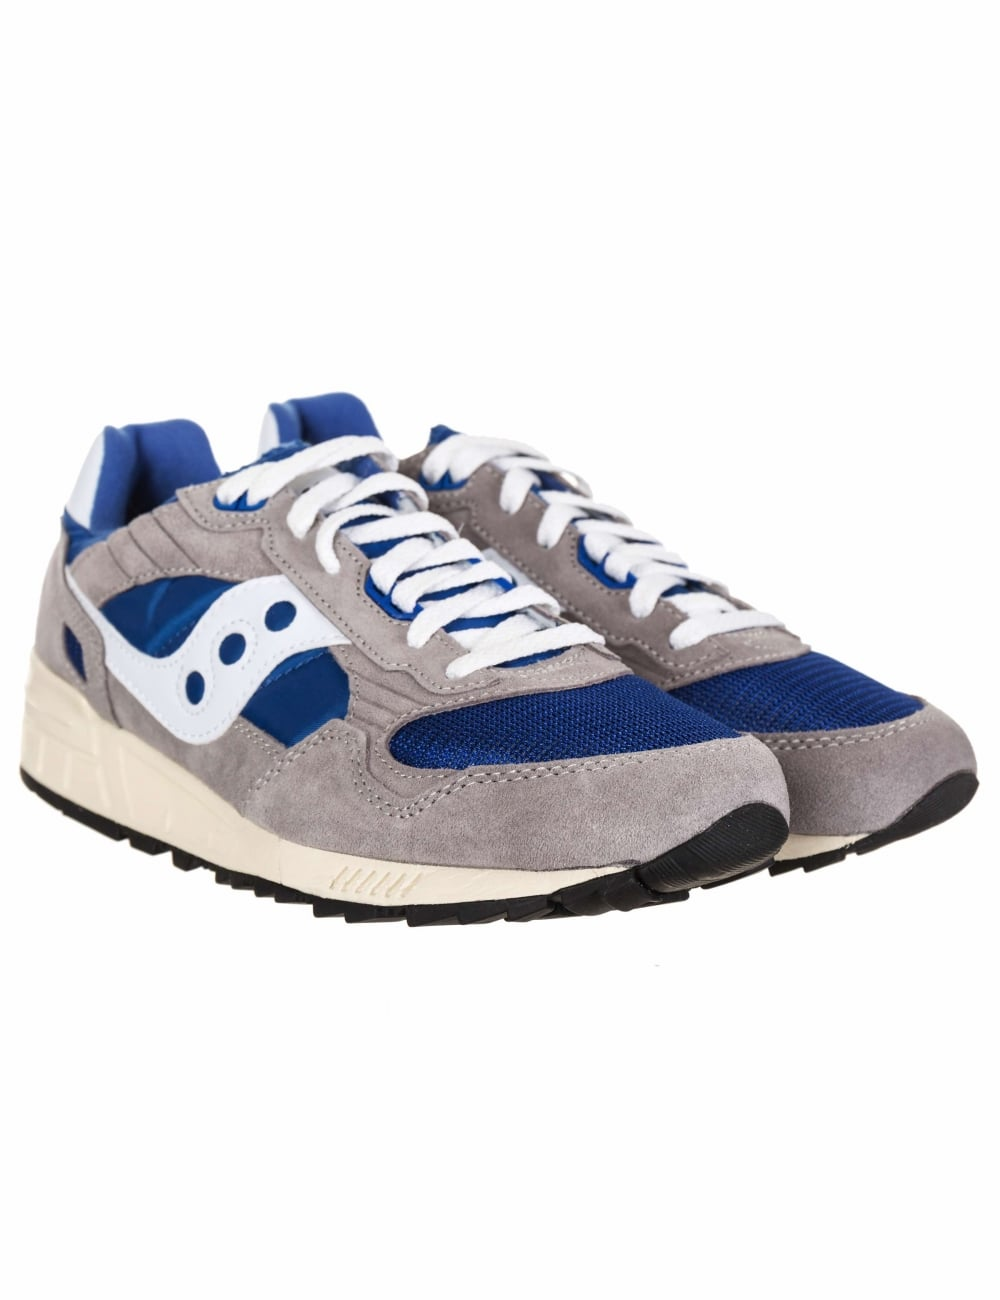 f0958ac519a3 Saucony Shadow 5000 Trainers - Vintage Grey Blue - Footwear from Fat ...